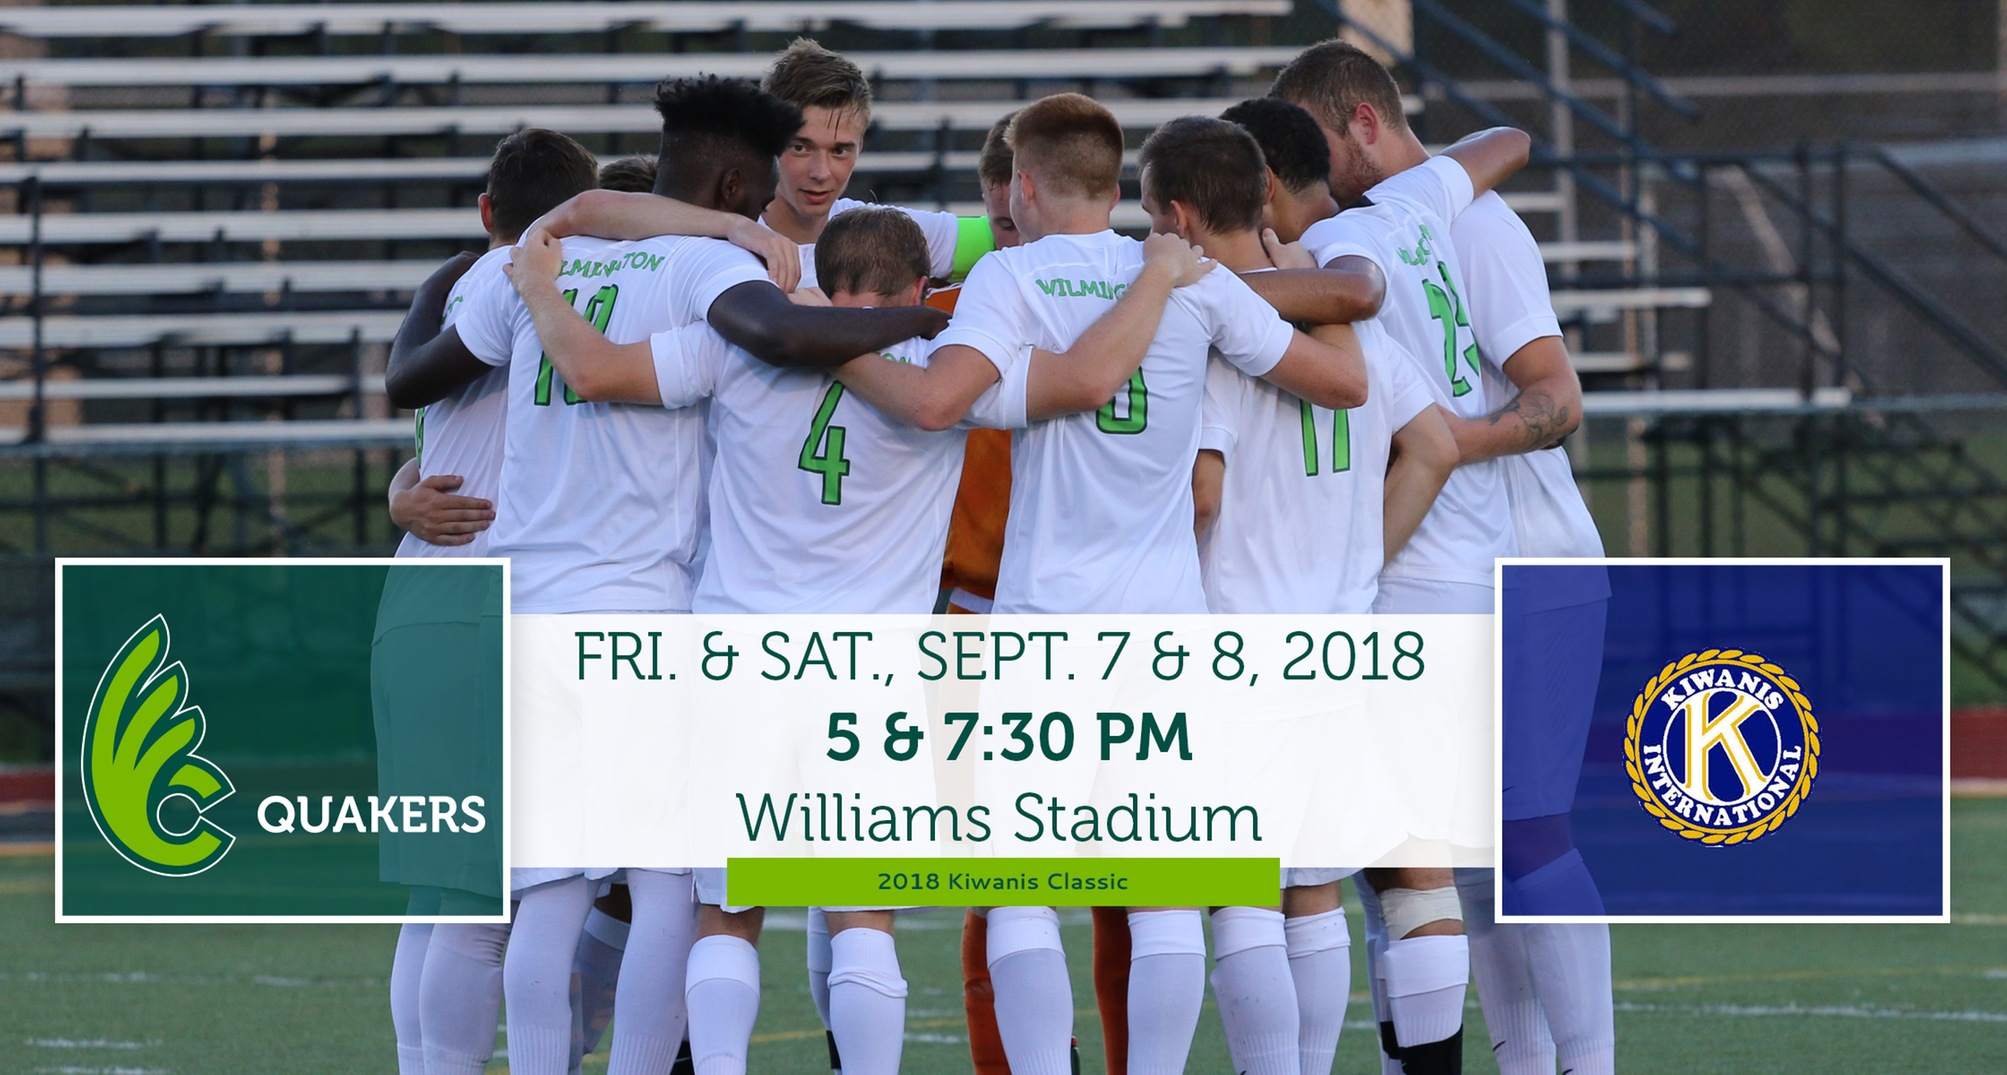 Men's Soccer to Host 2018 Kiwanis Classic This Weekend